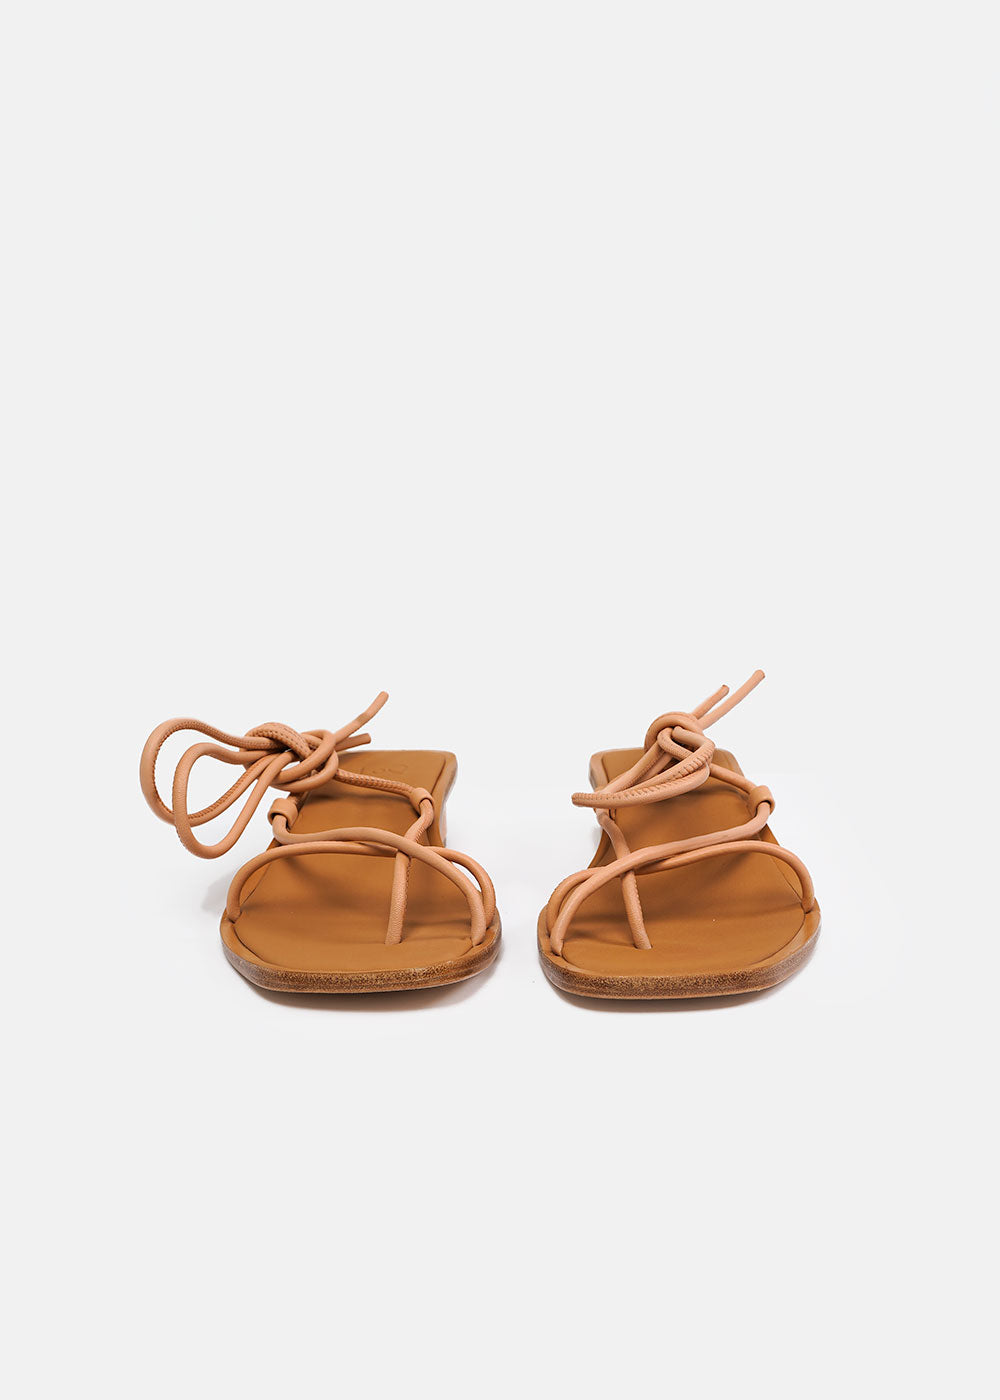 LoQ Nude Ara Sandals — Shop sustainable fashion and slow fashion at New Classics Studios